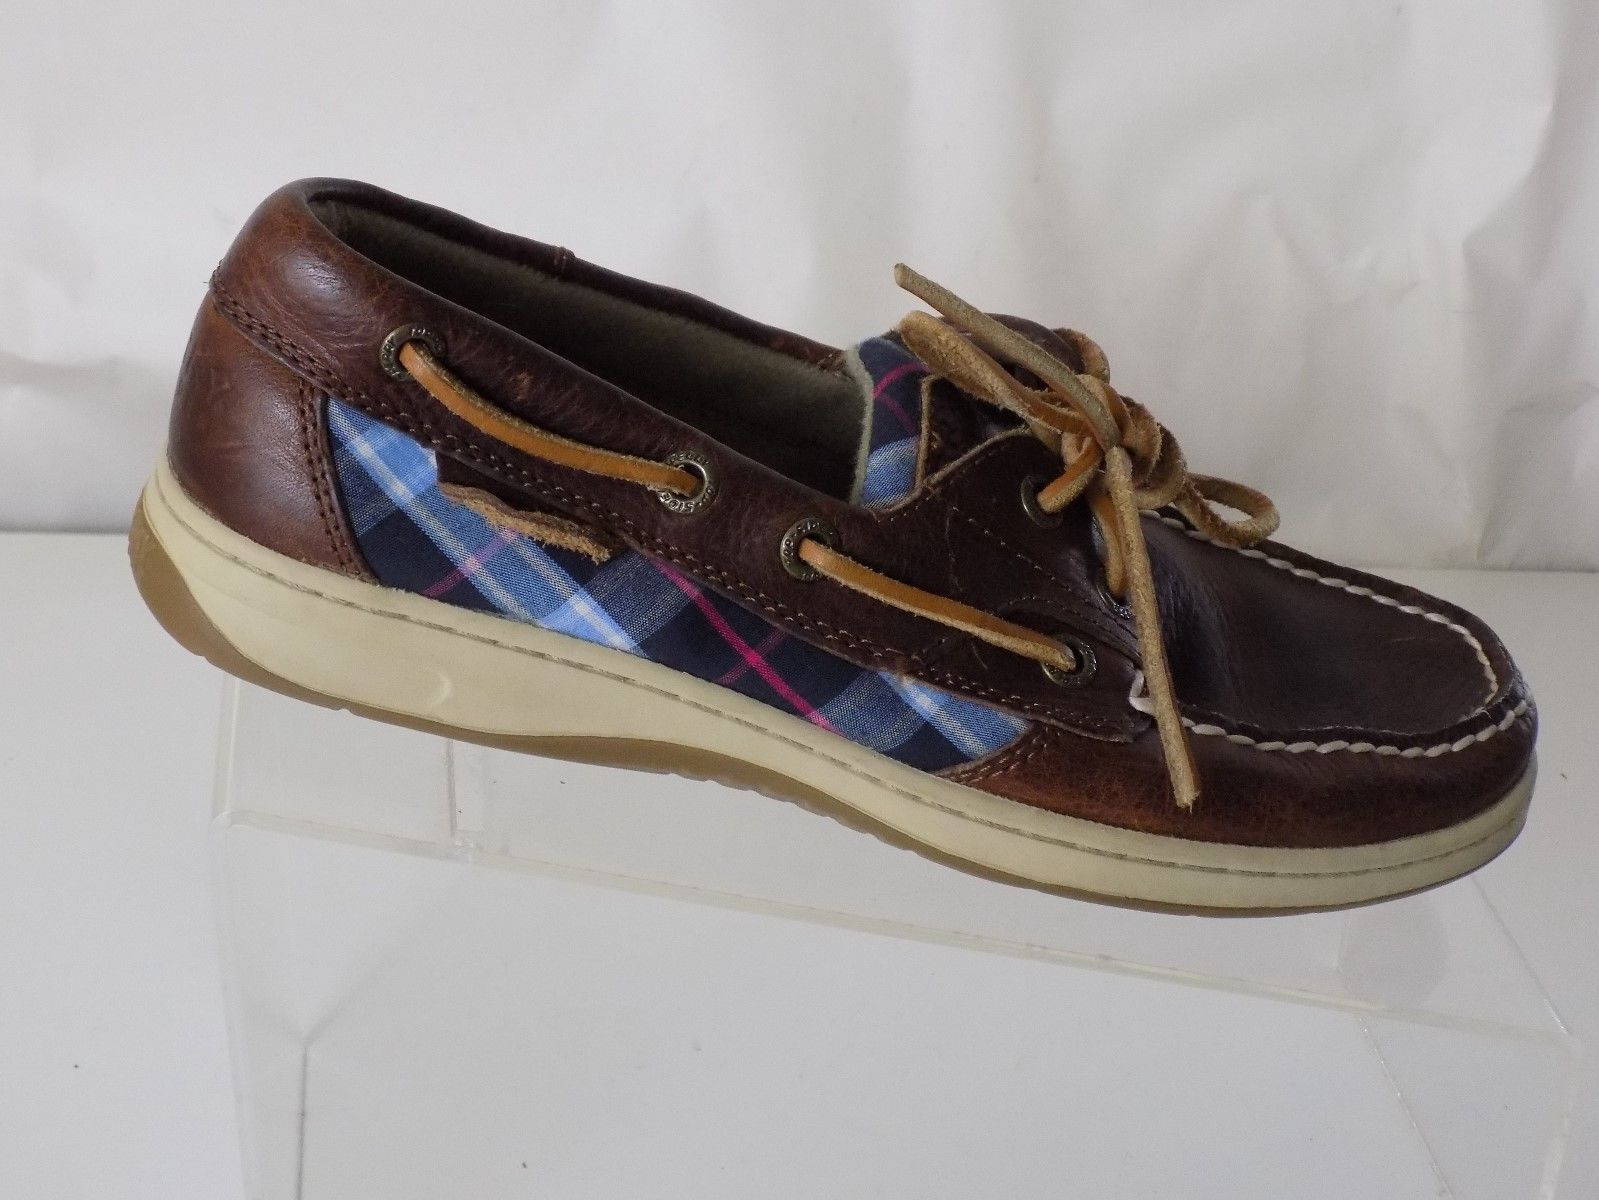 007efeef5d1 S l1600. S l1600. Previous. SPERRY TOP SIDER